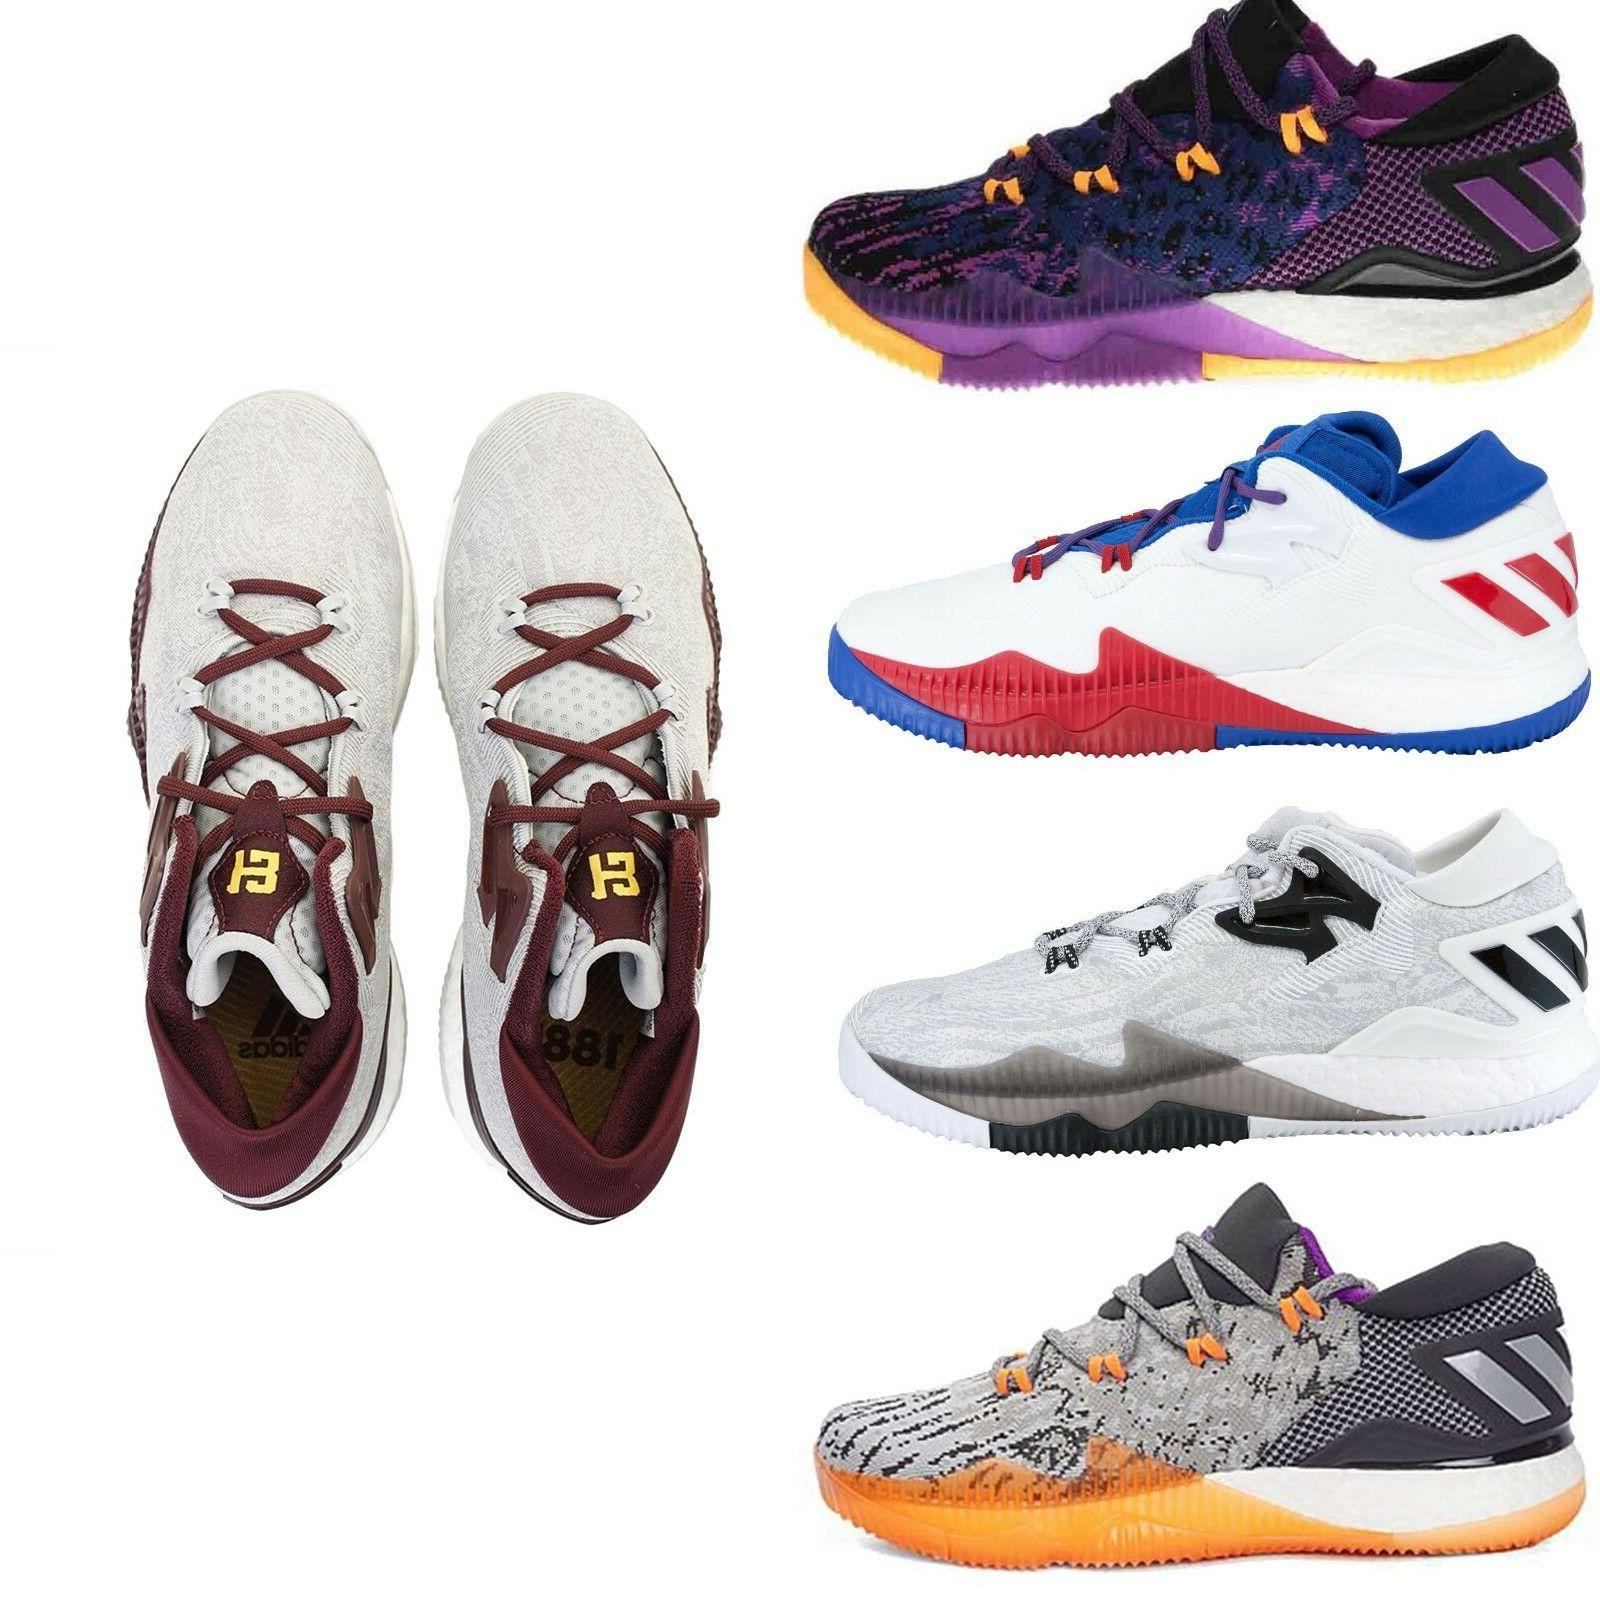 Adidas Men Athletic SM CL Crazylight Boost Low 2016 Vets Day